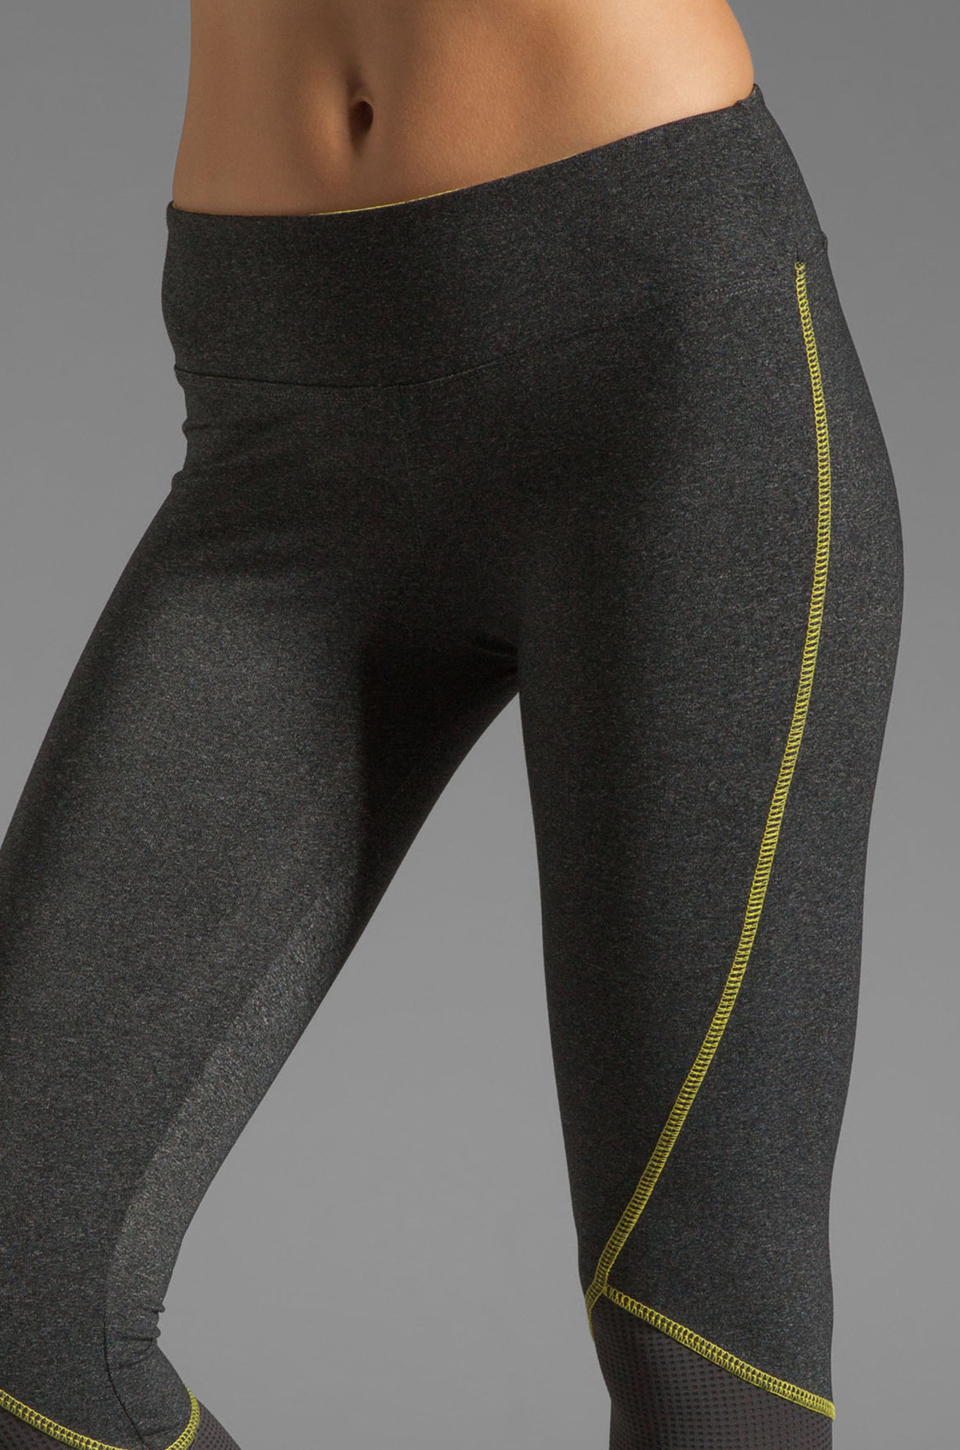 SOLOW Eclon Contrast Stitch Crop Legging in Heather Charcoal/Daffodil